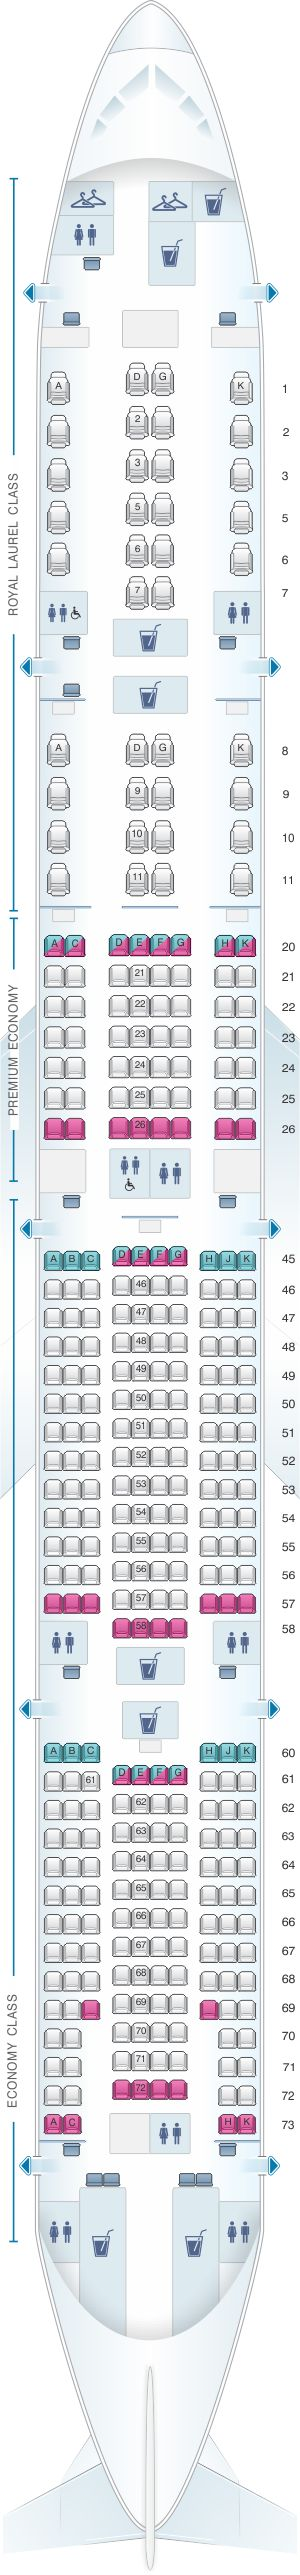 Seat Map EVA Air Boeing B777 300ER 353PAX